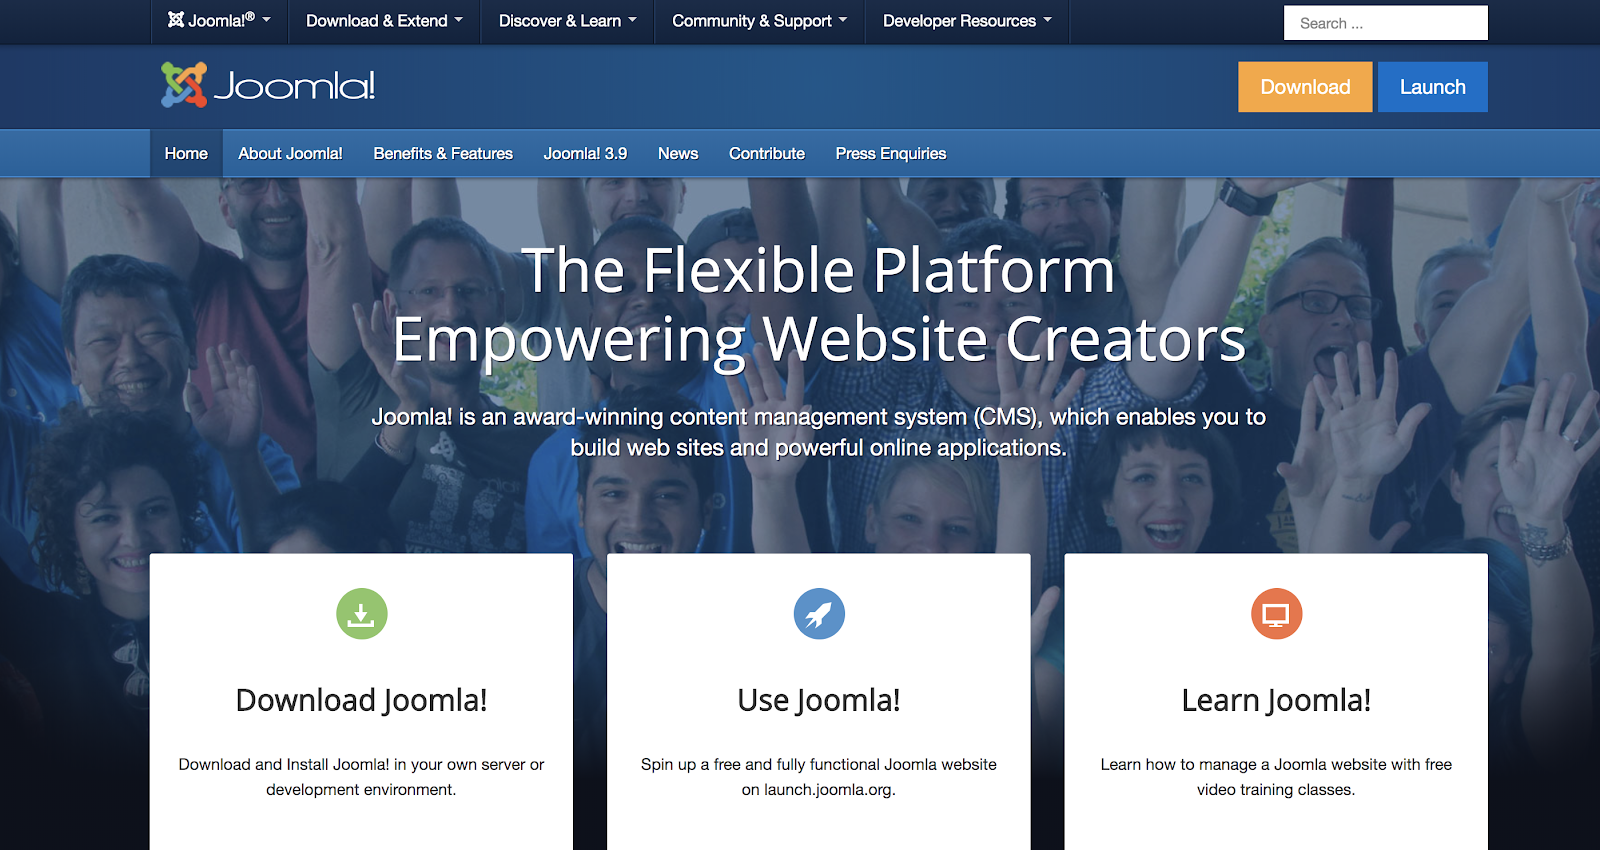 Joomla Self-Hosted Free Blogging Site to Use on a Budget